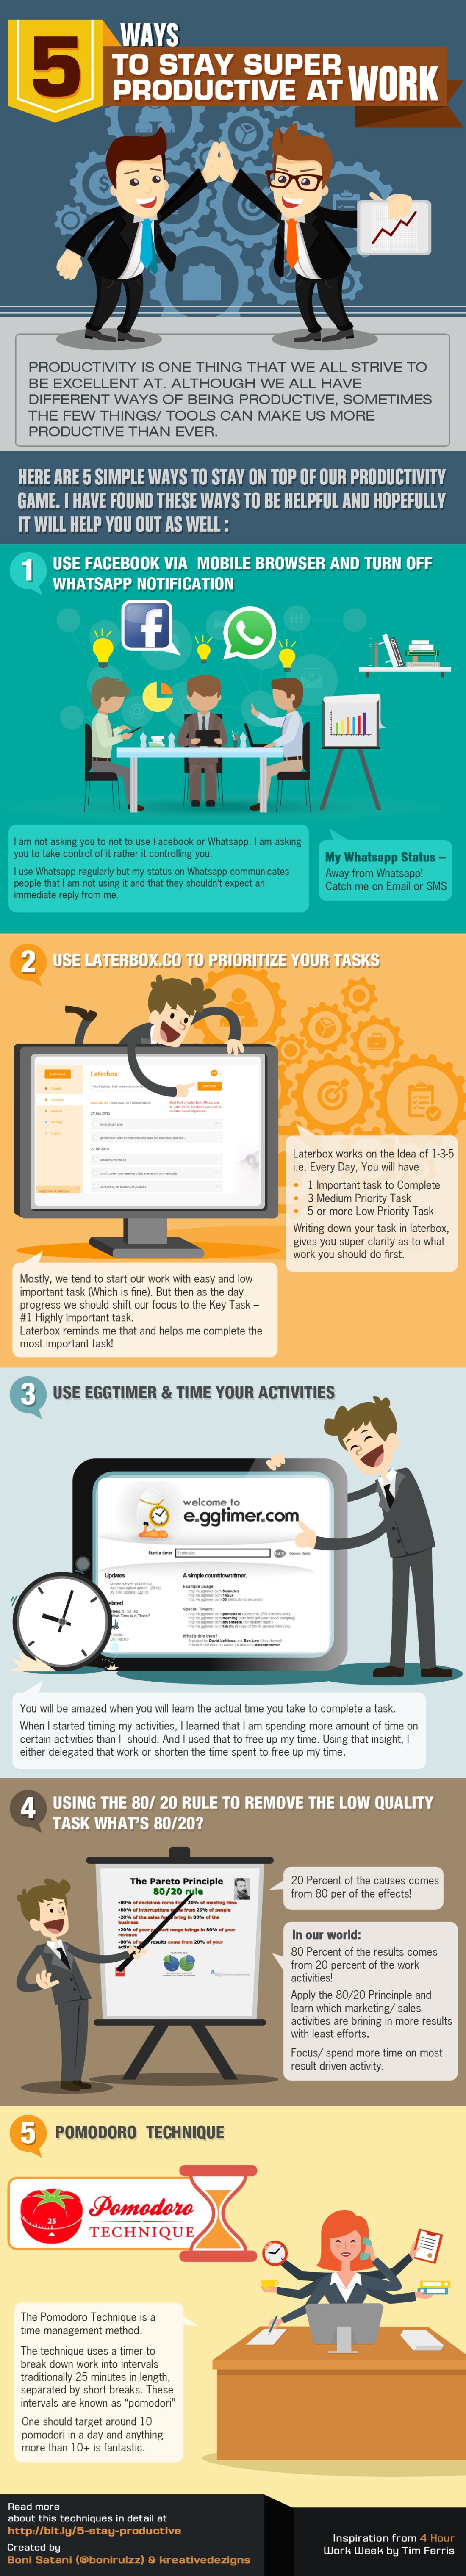 5_ways_to_stay_super_productive_at_work_v3